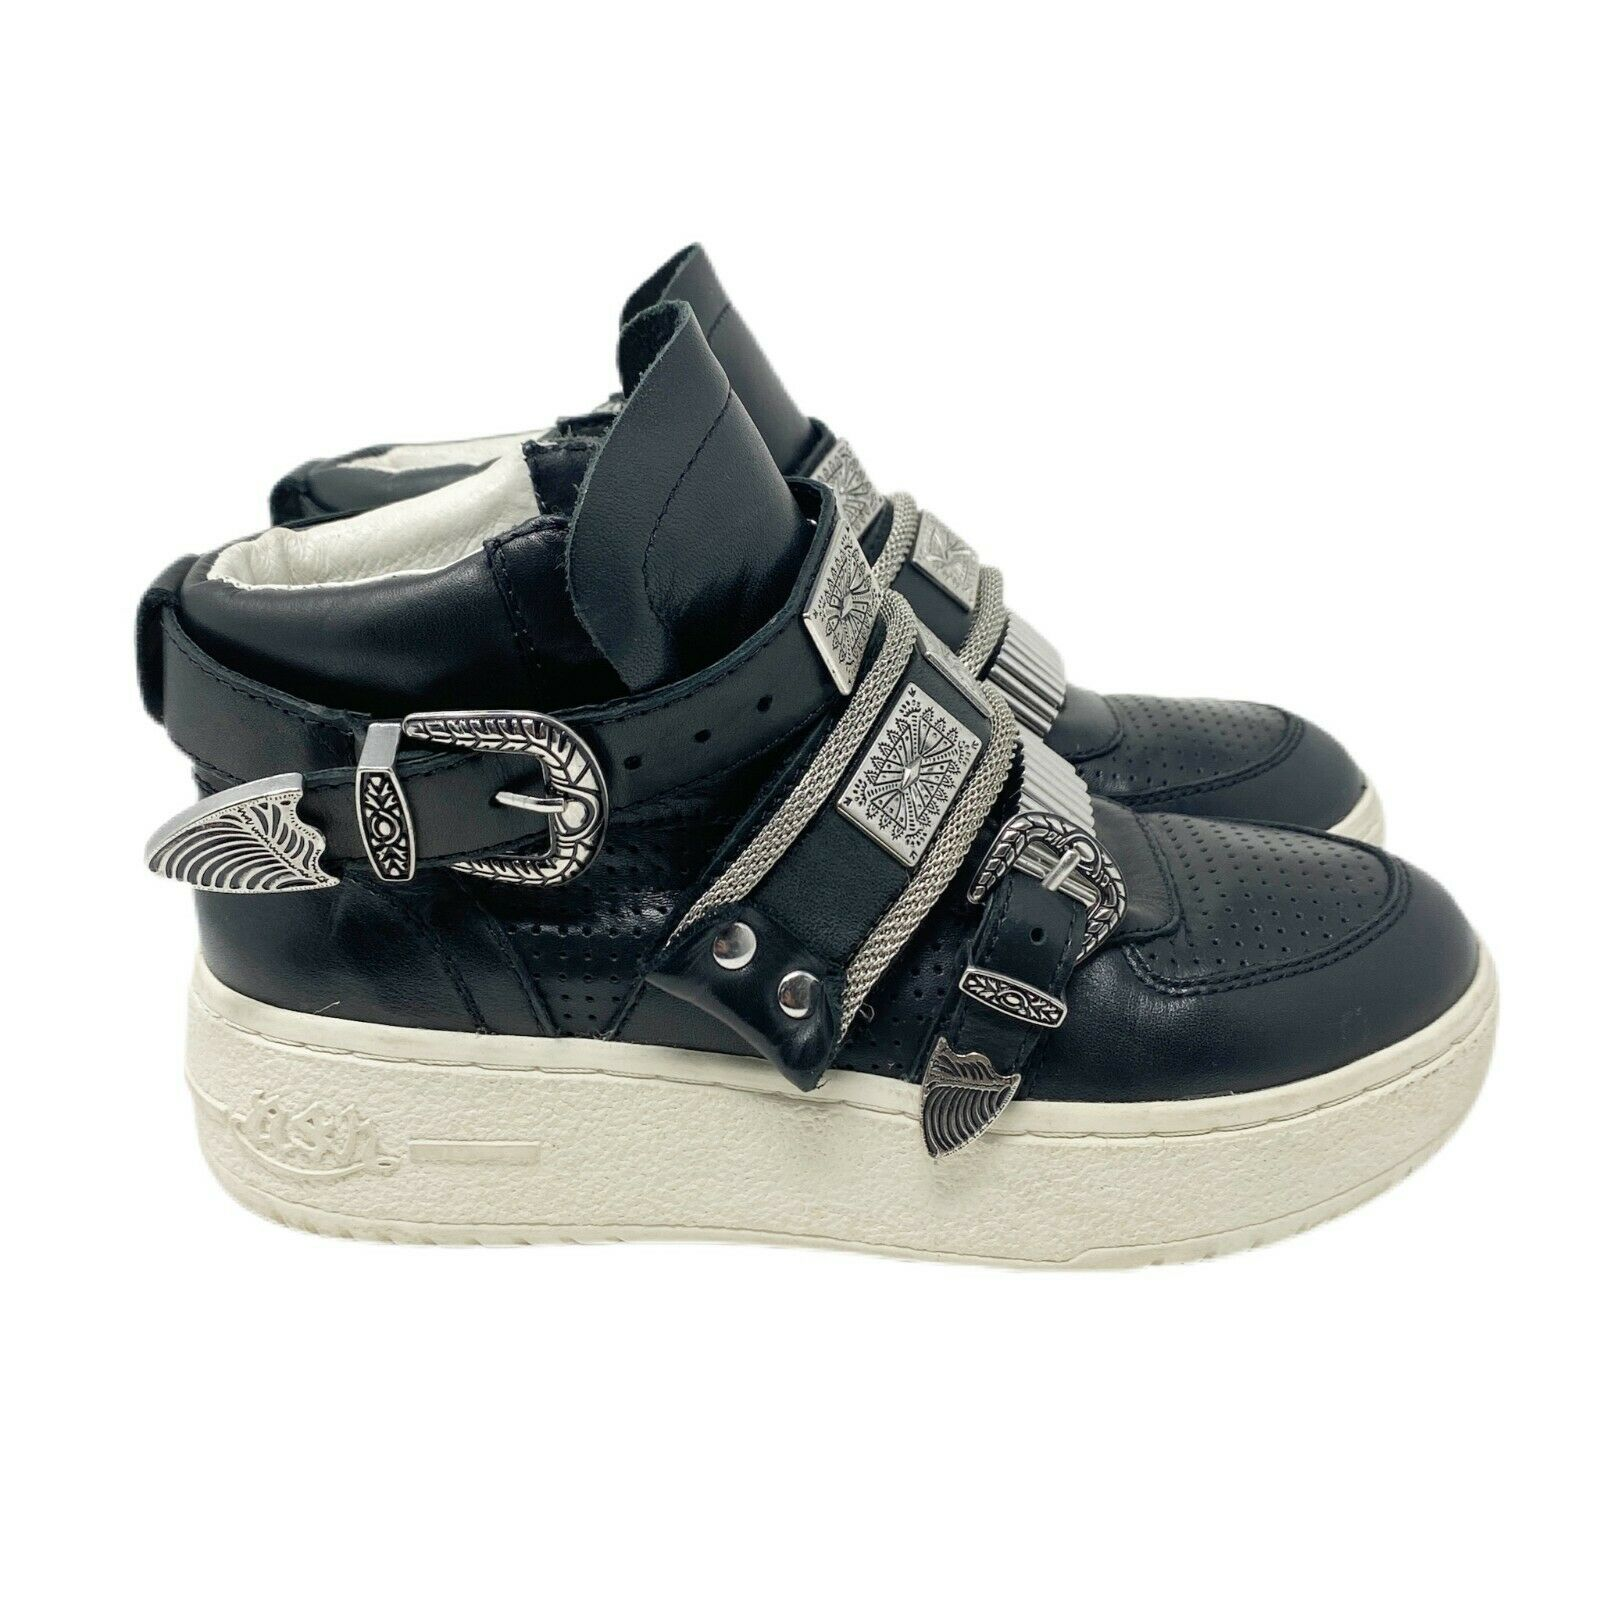 Ash Fame Womens Black Leather Buckle High Top Sneakers Shoes Size US 5.5 EUR 36